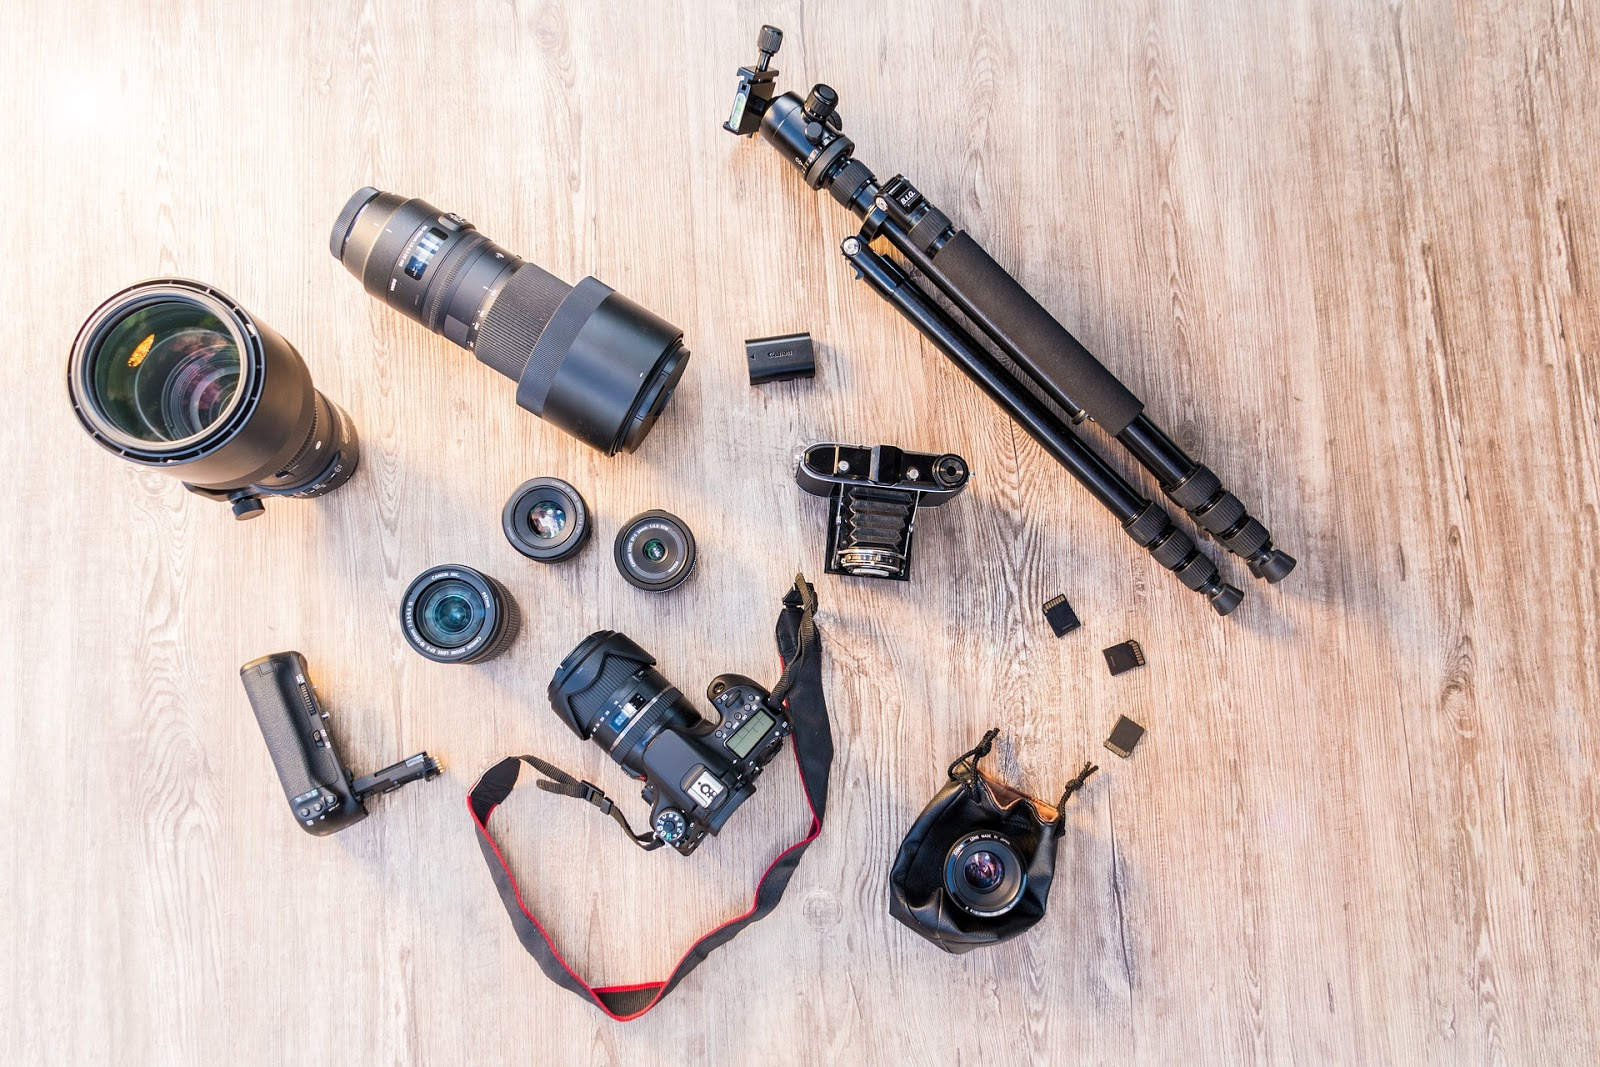 camera lenses for commercial photography by TeeImages